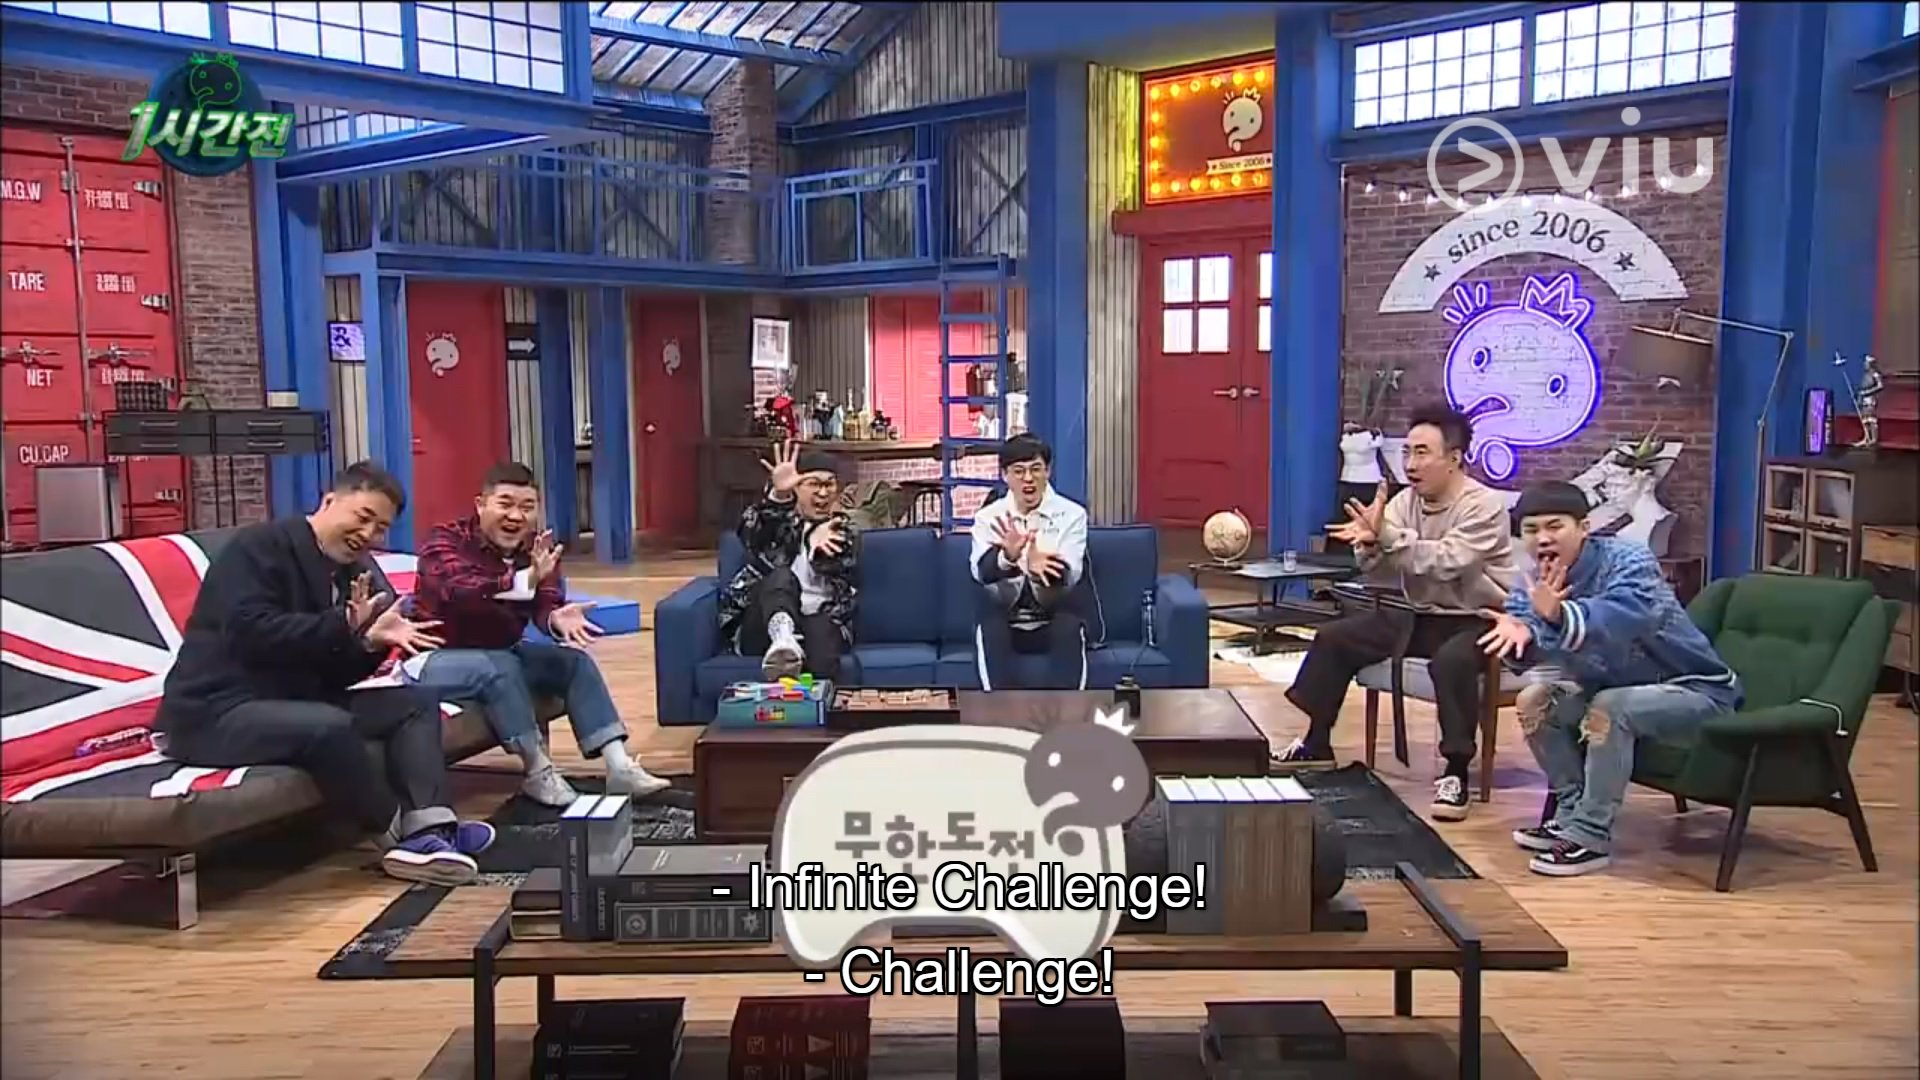 Image result for infinite challenge viu site:twitter.com